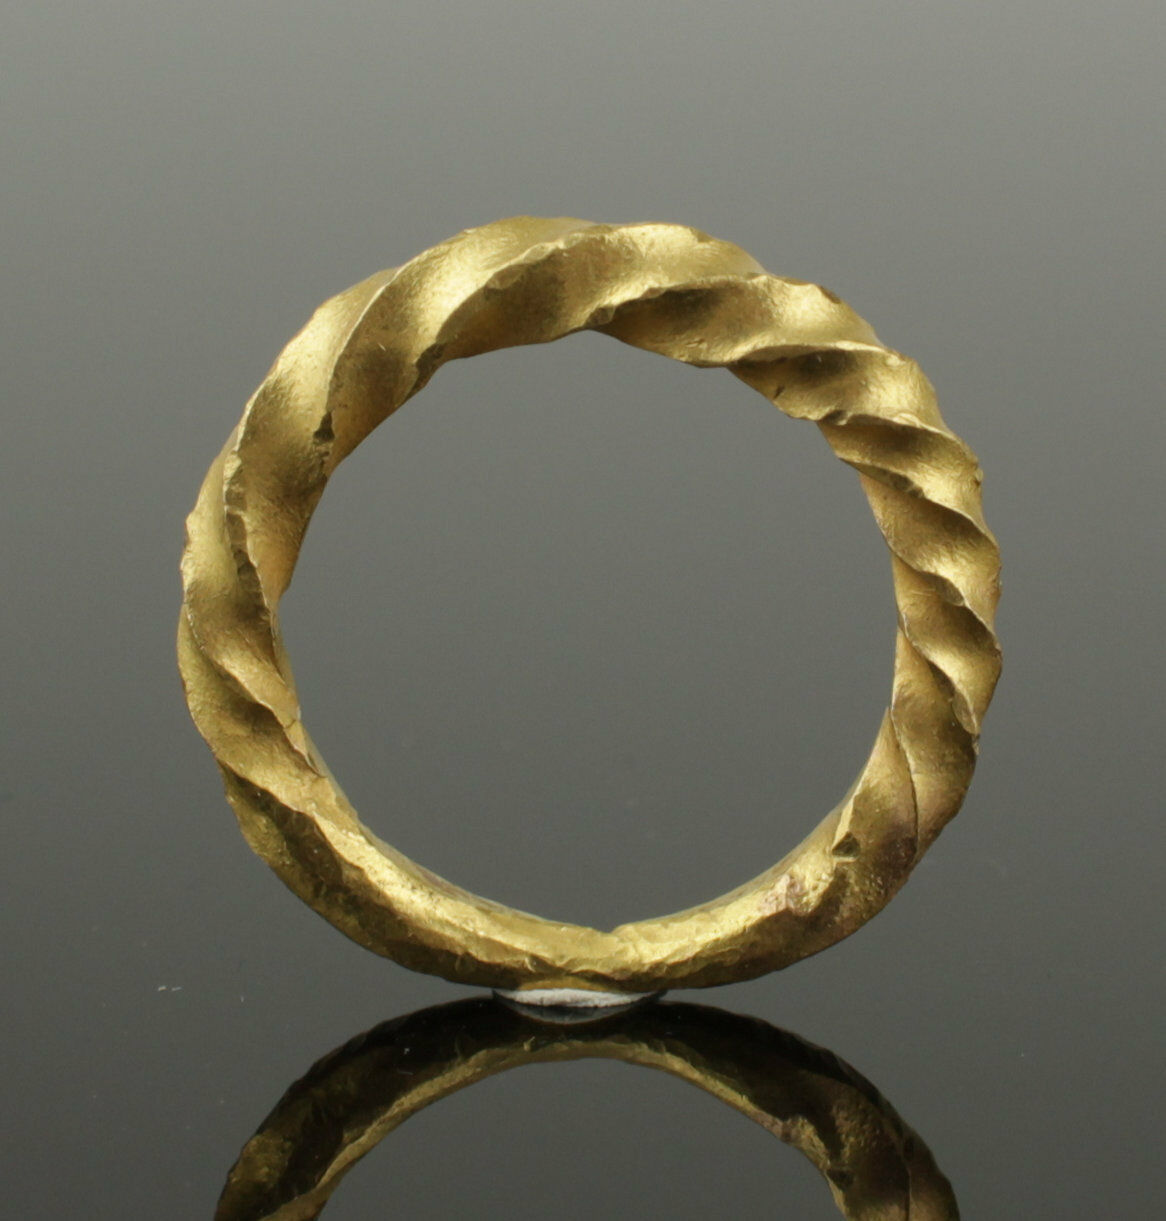 Stunning 10Th Century Viking Twisted Gold Ring - Highly Wearable!